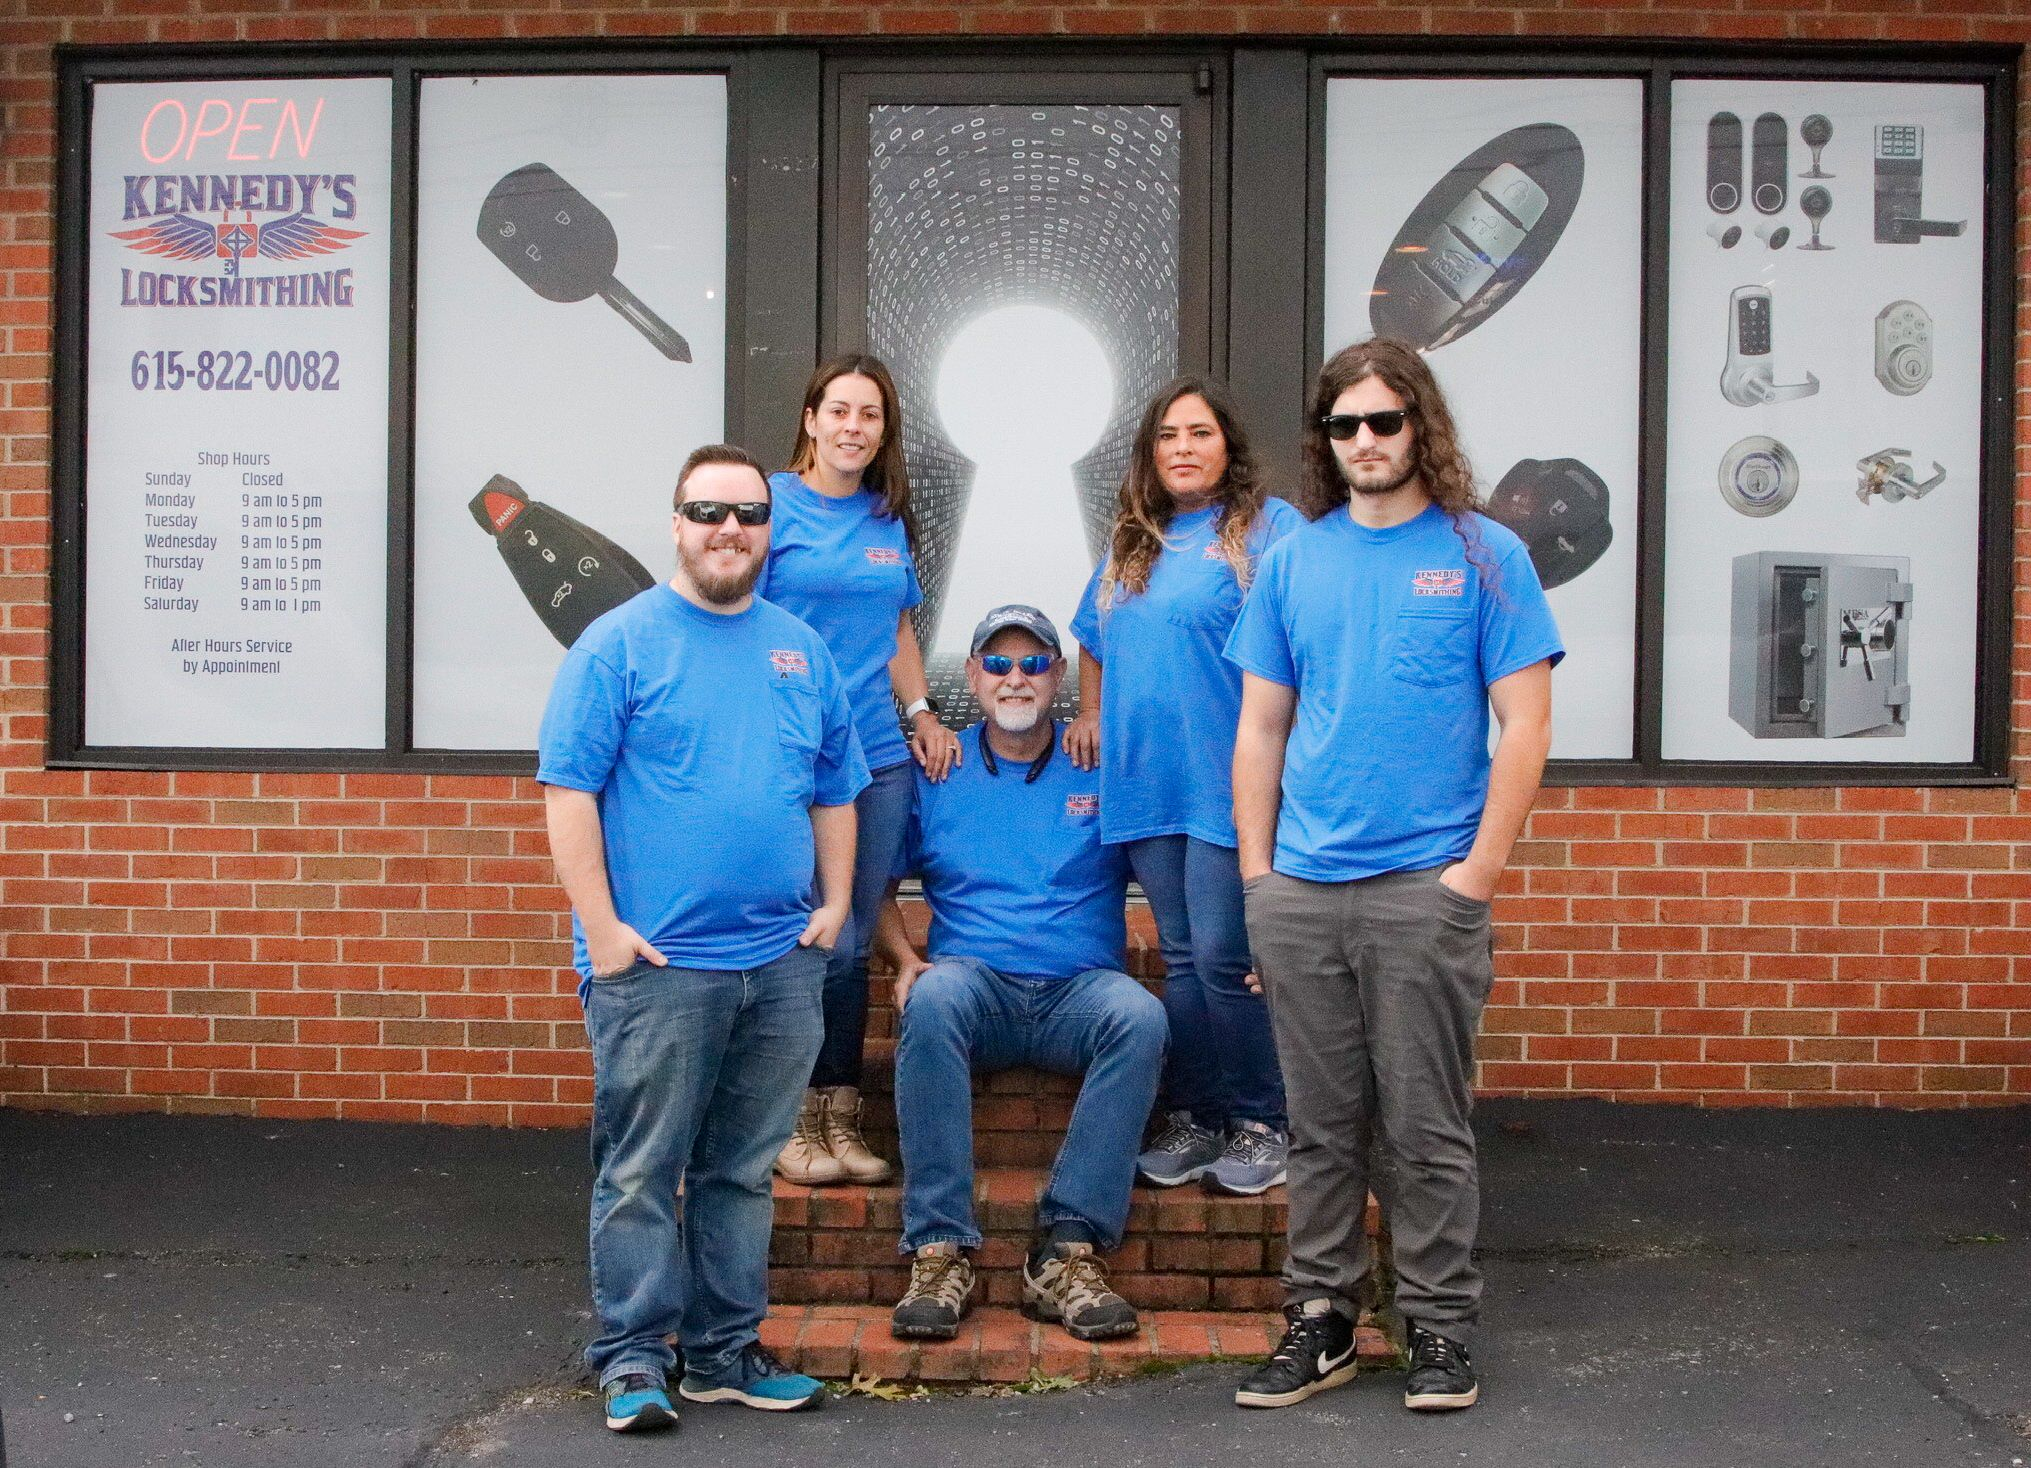 Kennedy's Locksmithing is a family owned and operated